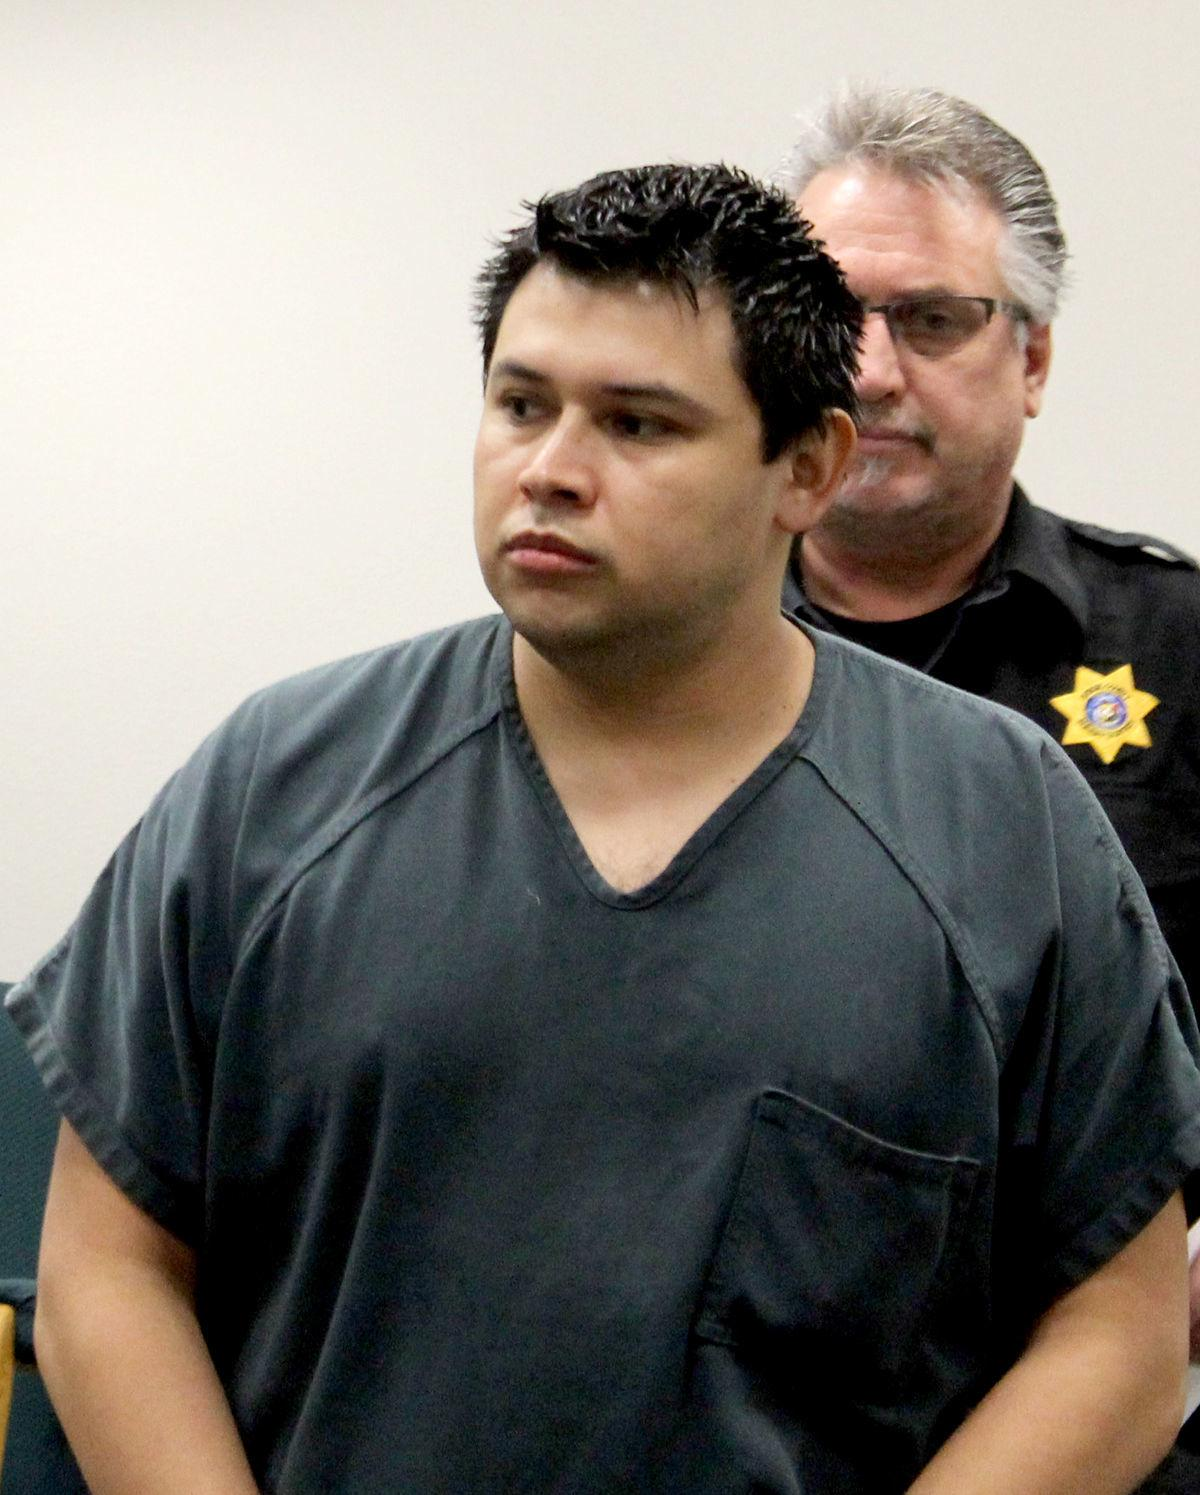 Not guilty plea entered by defense in Beaver Dam homicide case (copy)